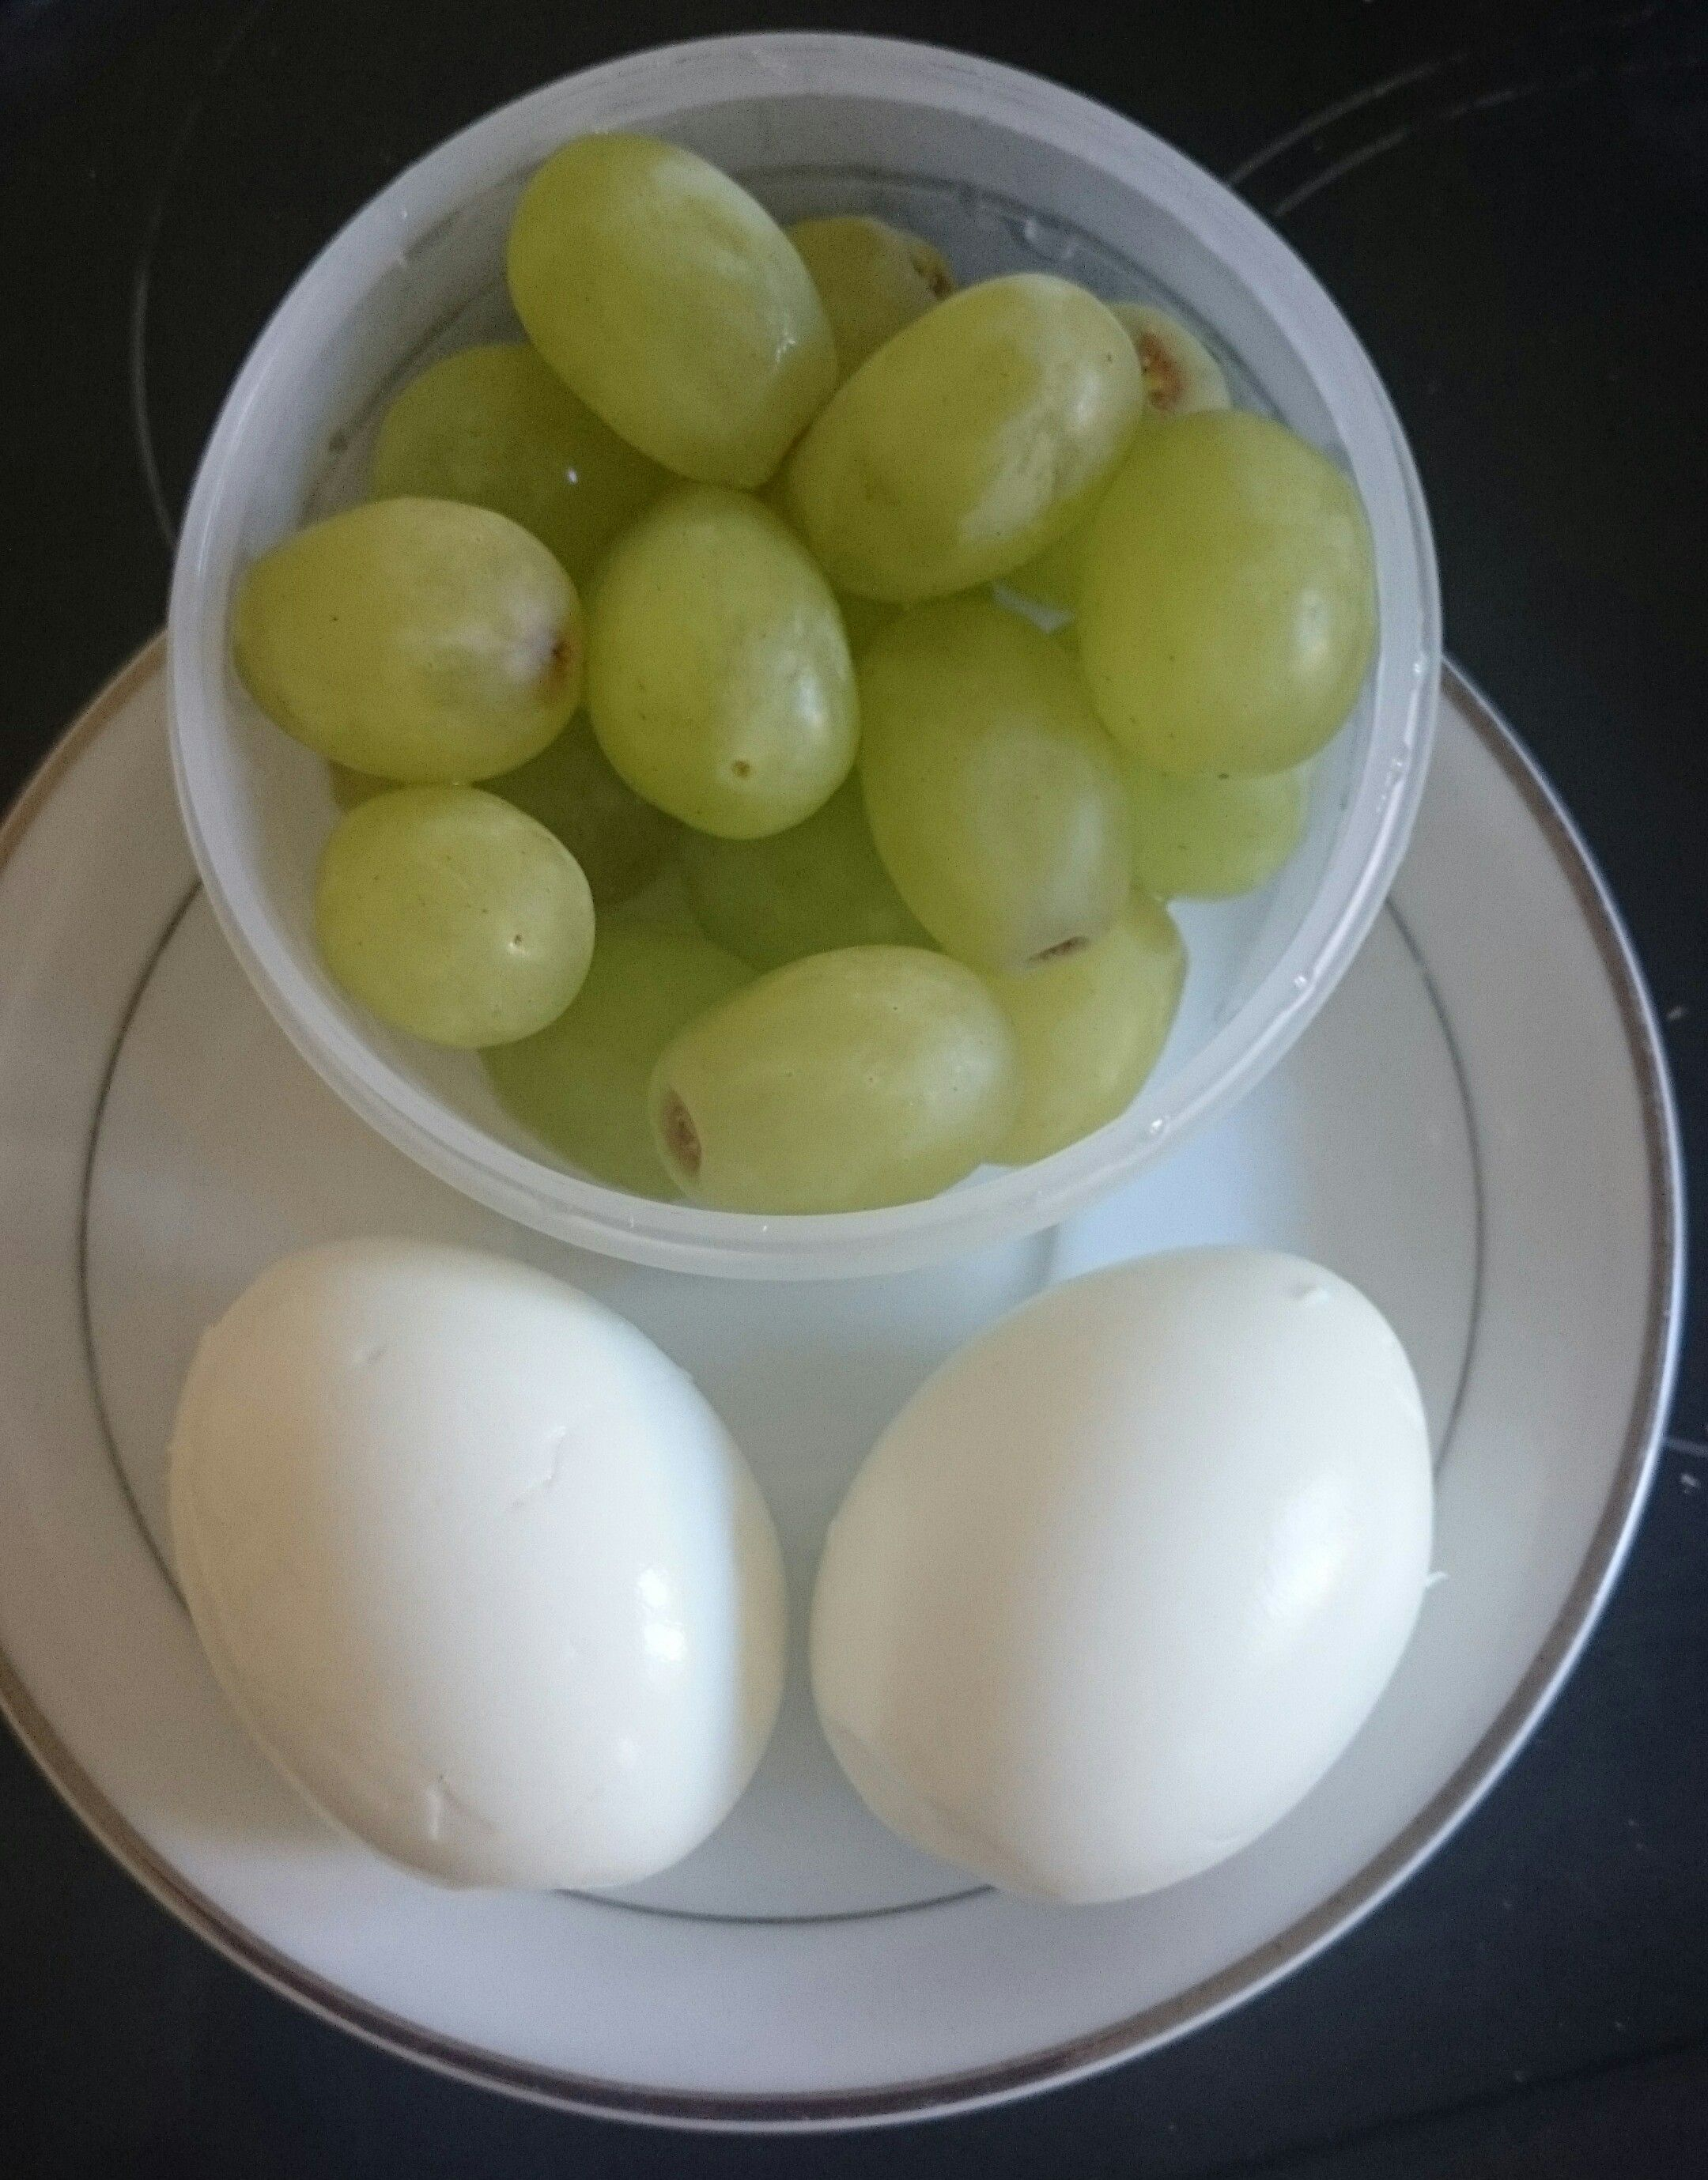 21 Day Fix Snack Idea S 2 Hard Boiled Eggs And Grapes 1 Red 1 Purple 21 Day Fix Snacks